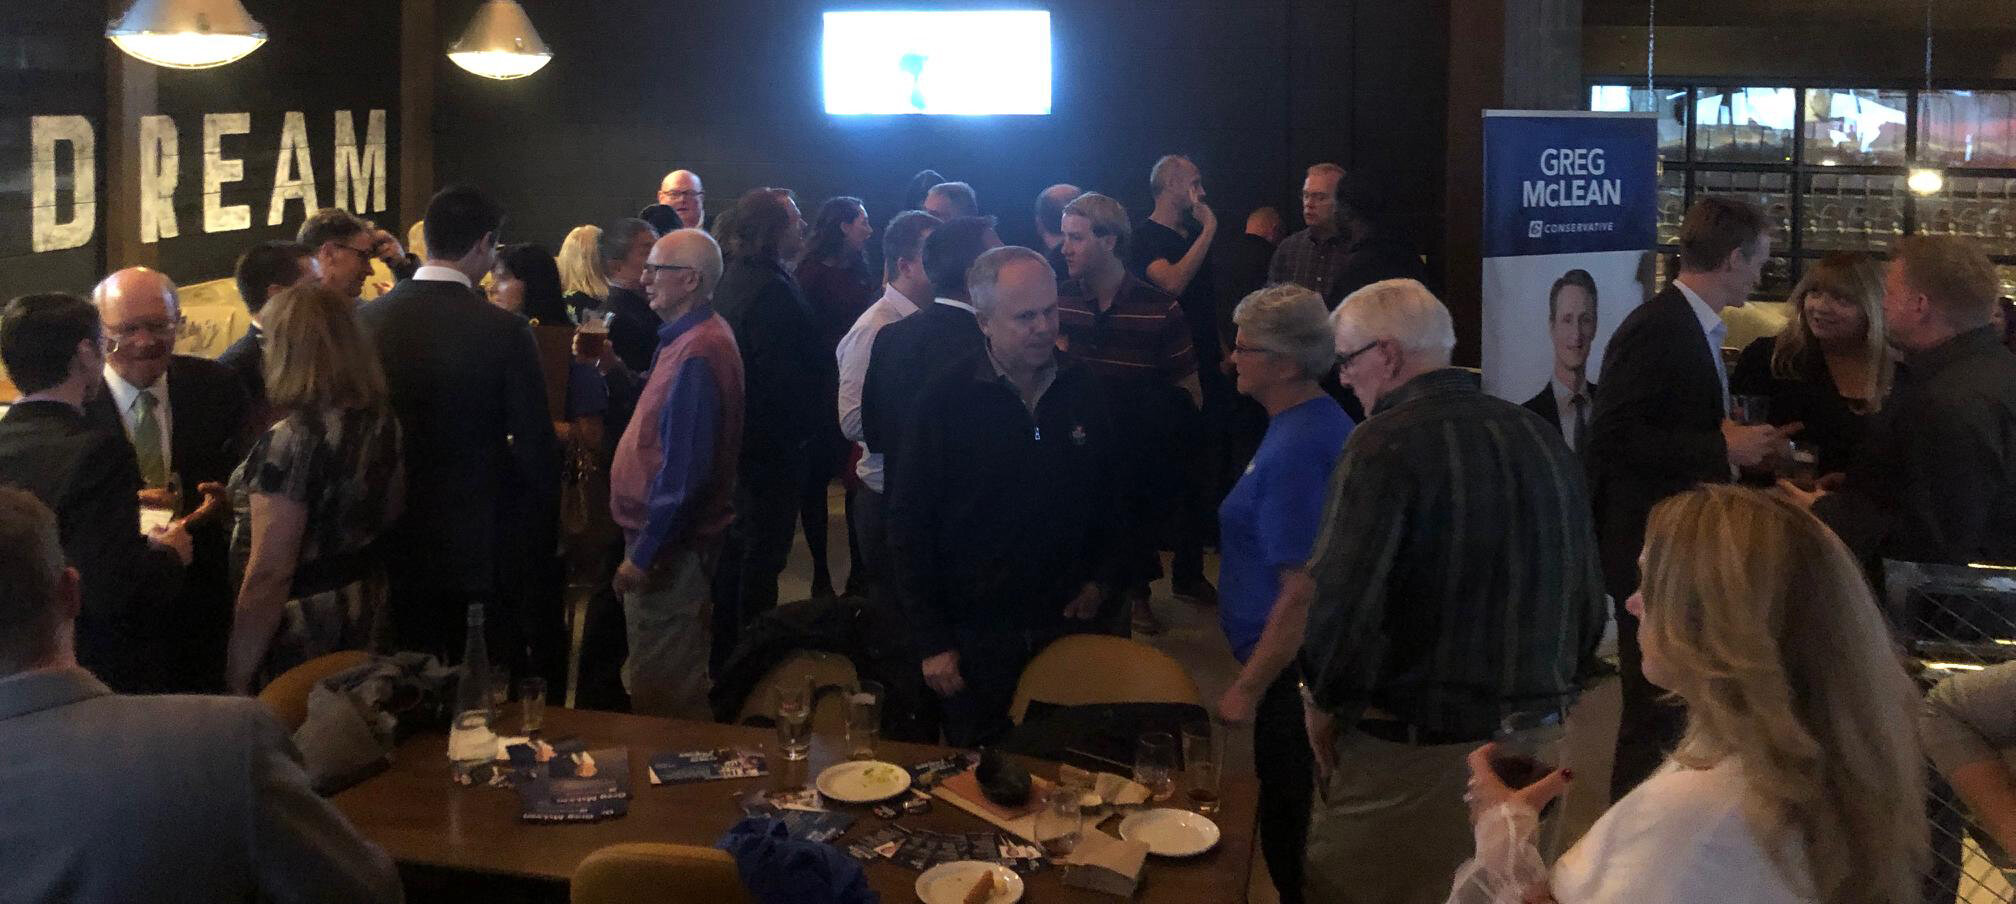 It was standing room only tonight (Friday Oct 4) at a Beltline community Meet-and-Greet event. I was pleased to meet and chat with many Calgary Centre residents living in the Beltline and throughout the riding, and hear about what issues are top of mind in this election (few surprises - our faltering economy and the rising cost of living topped the list).